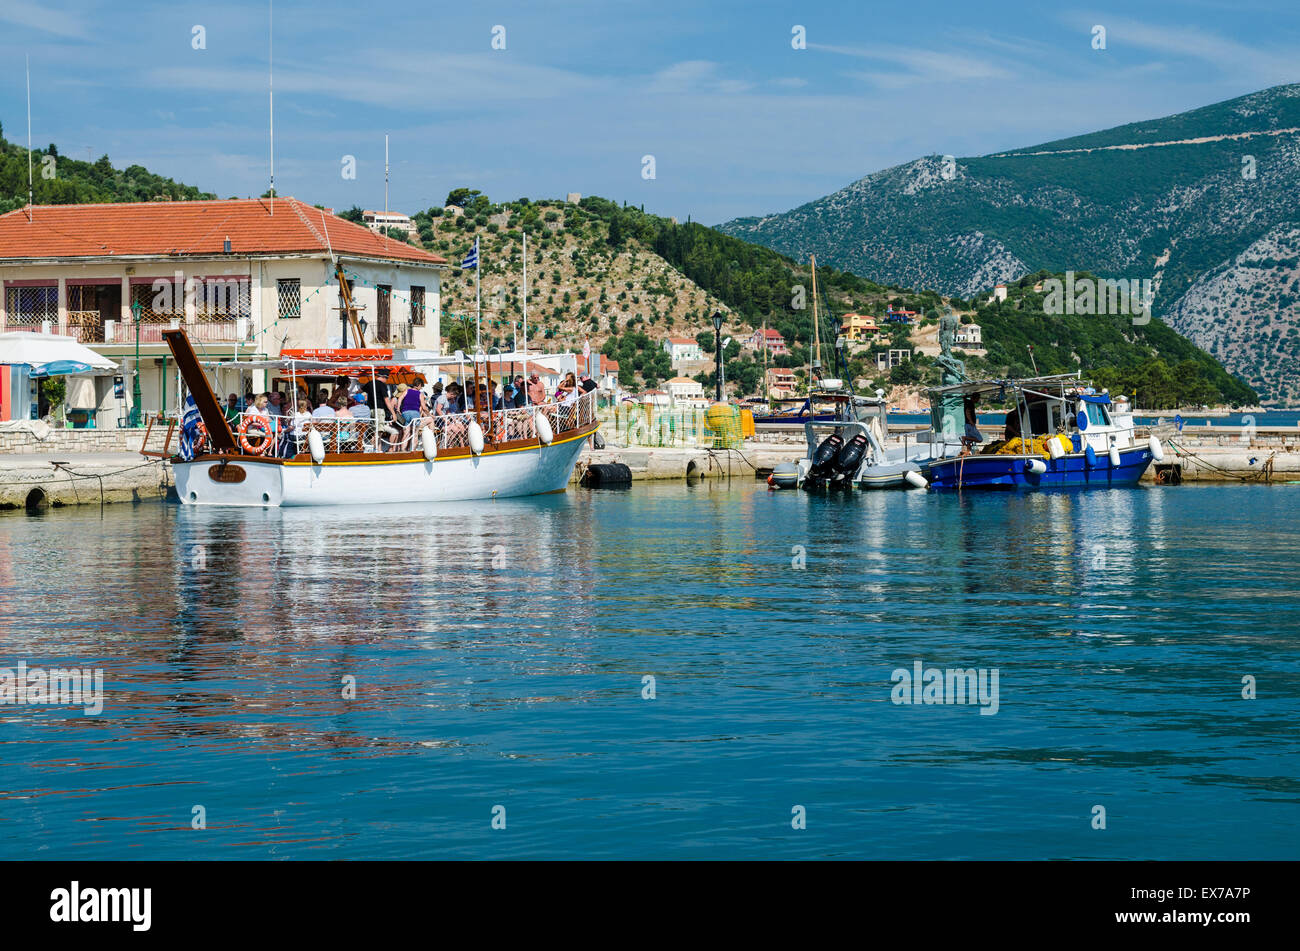 Pleasure boats with passengers in the harbour at Vathy - Stock Image